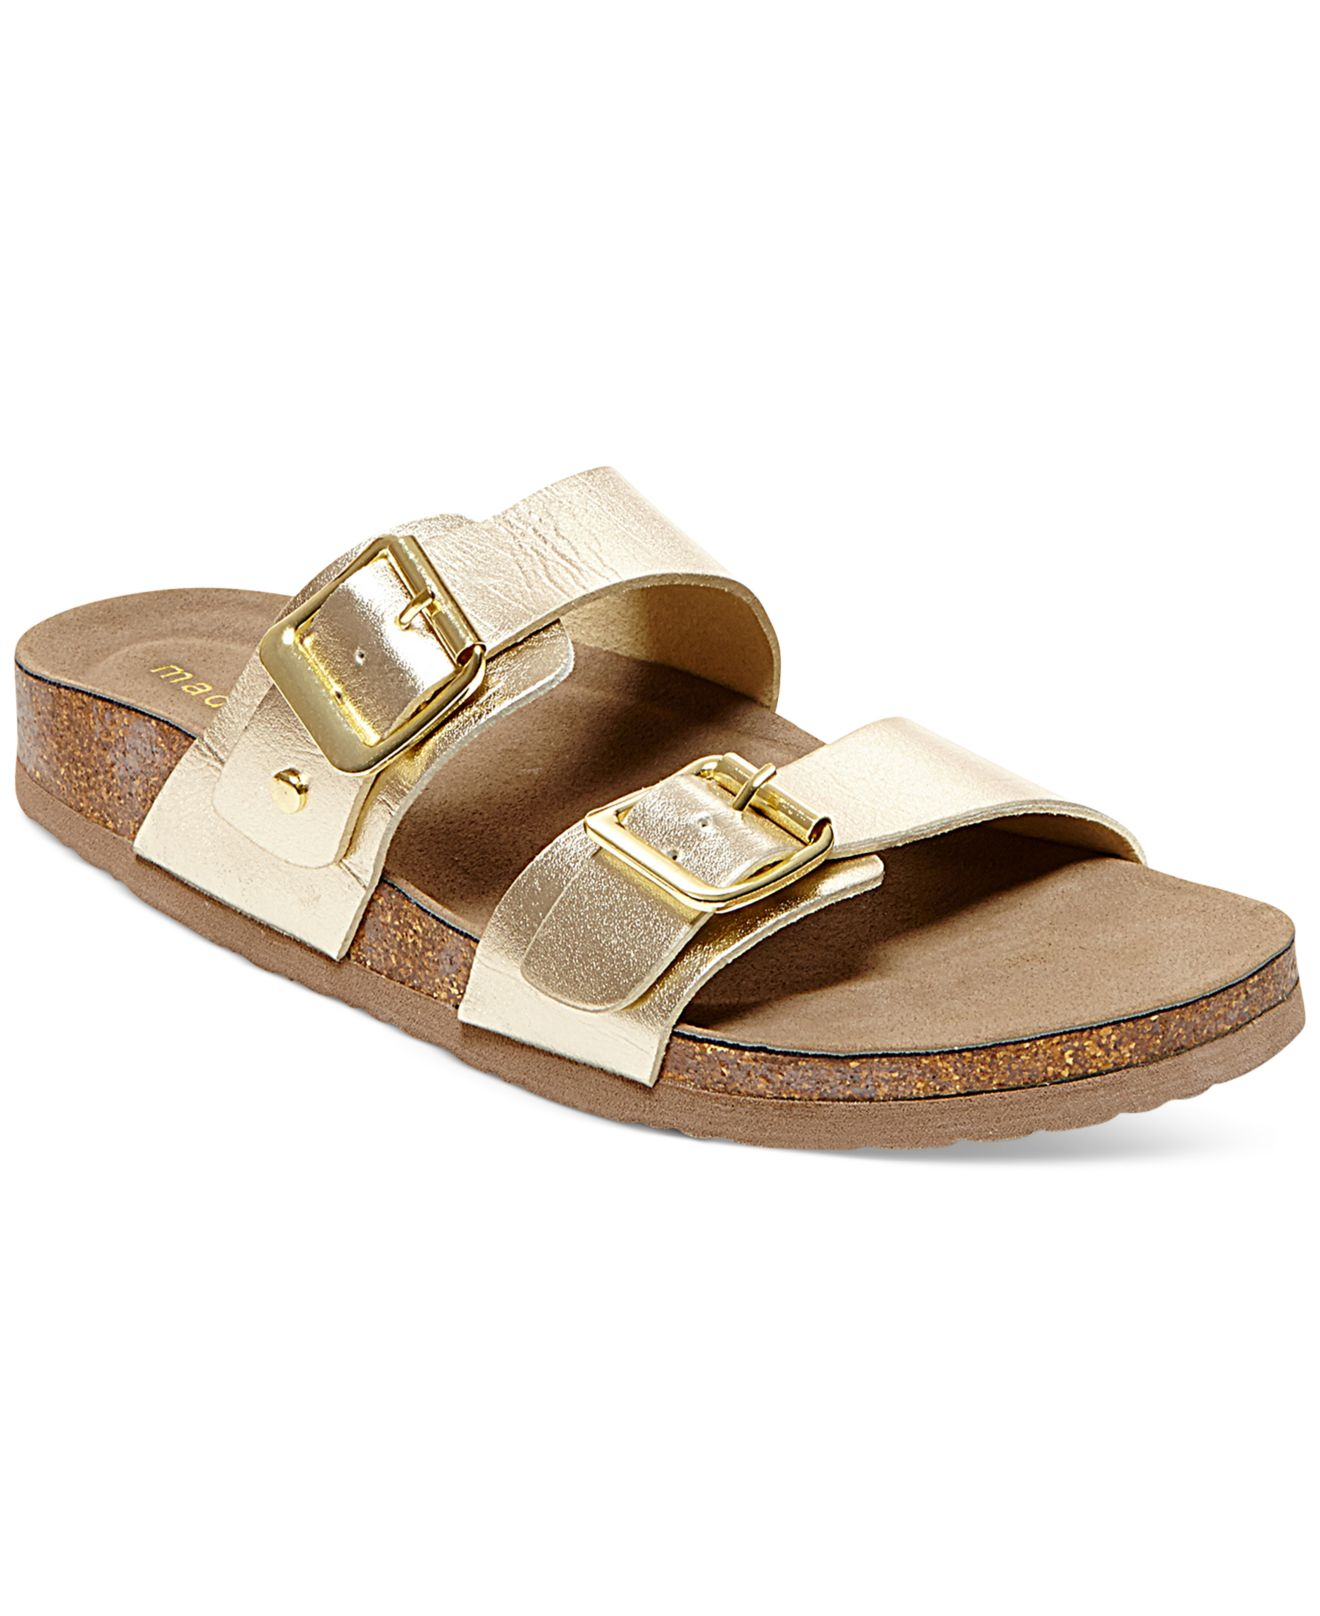 Madden Girl Brando Footbed Sandals In Metallic Lyst